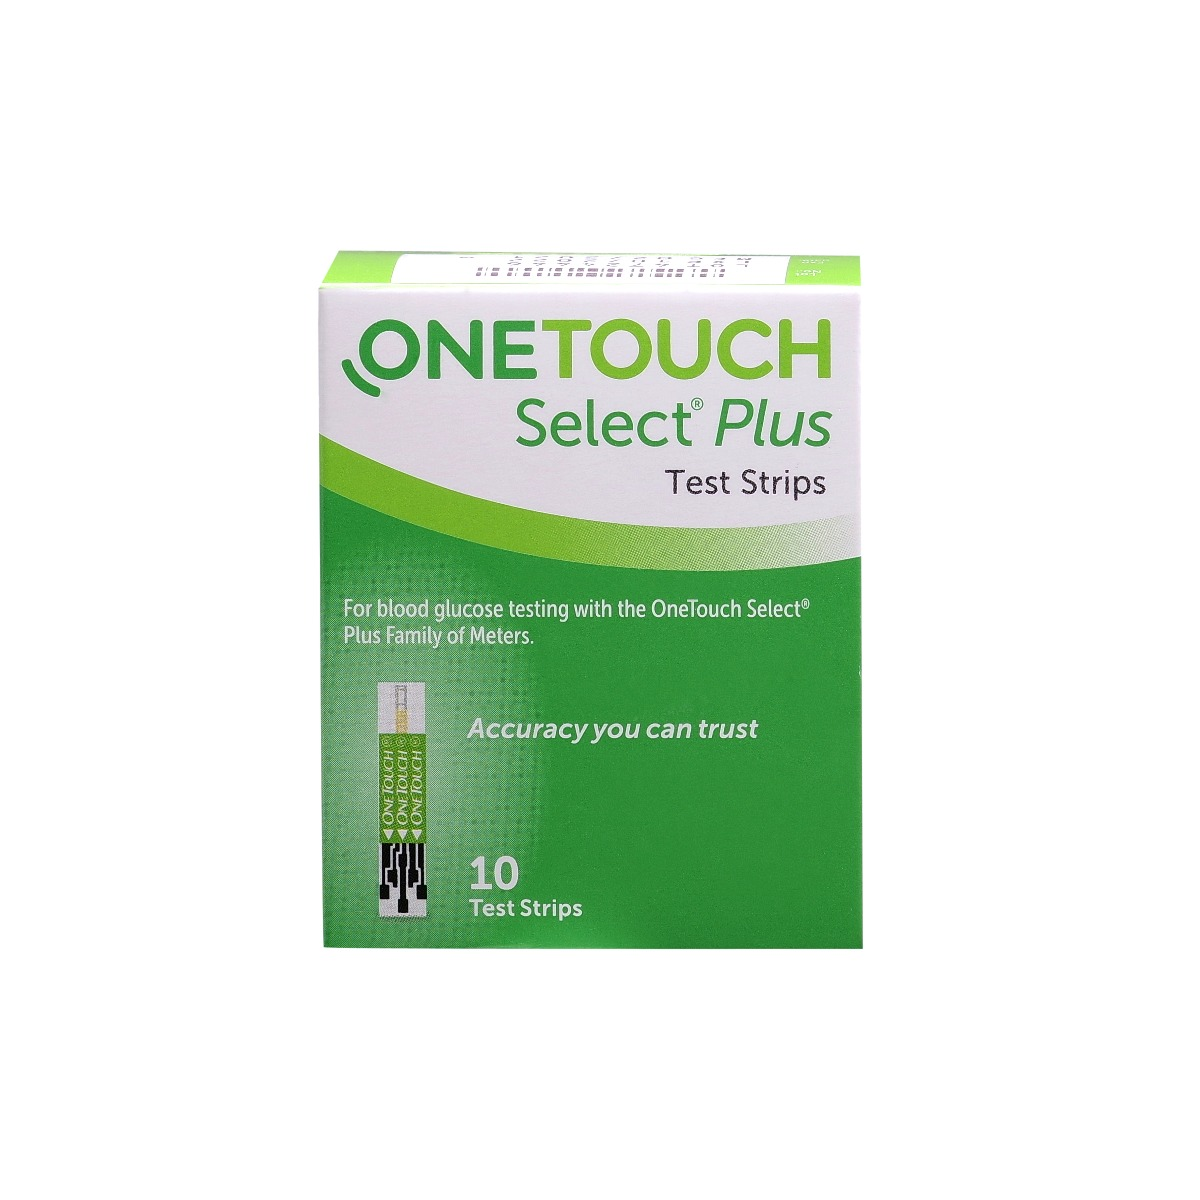 OneTouch Select Plus Test Strips, 10 Count, Pack of 1